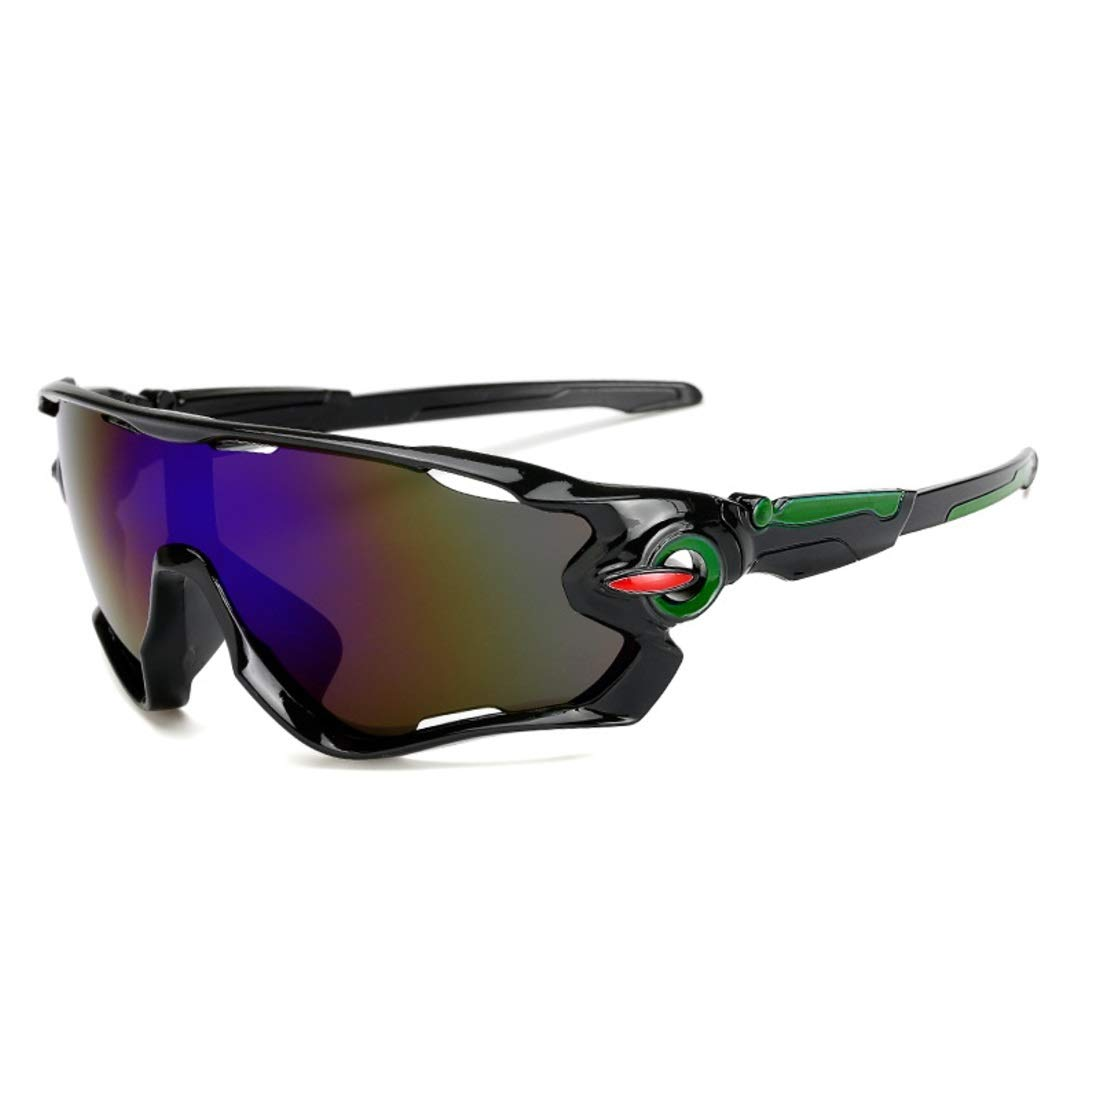 BAOYIT Outdoor Riding Windproof Sand-Proof Glasses Men and Women Riding Equipment Riding Sunglasses Protection Eye Glass (Color : B) by BAOYIT